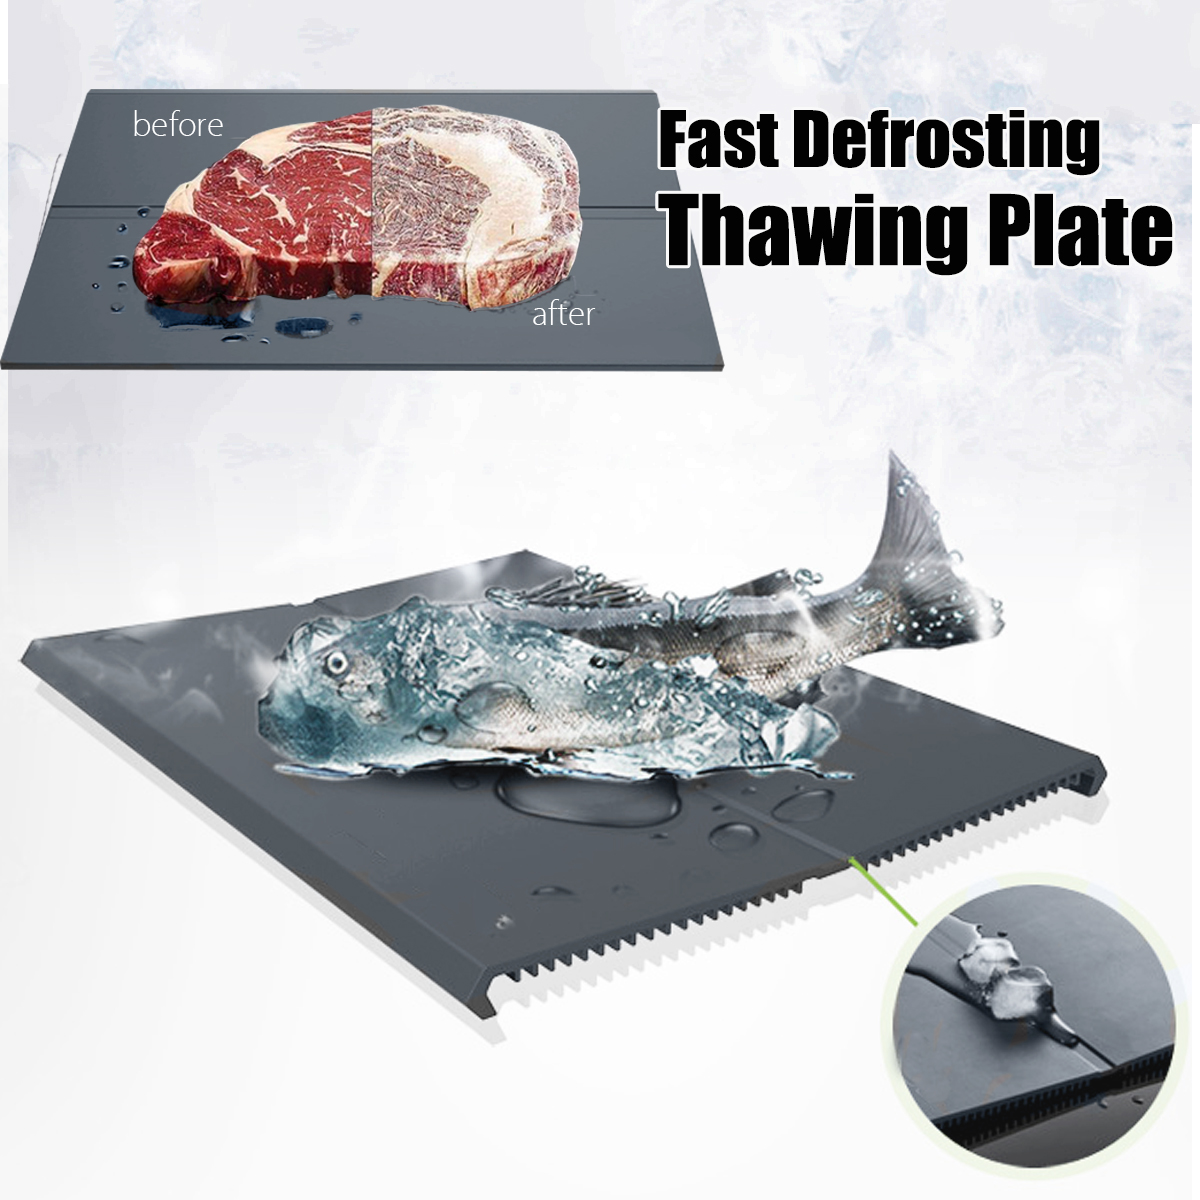 SURVEN Fast Defrosting Tray Plate 18 X Speed Quick Thawing Safe Way to Defrost Meat or Frozen Food Without Electricity ...